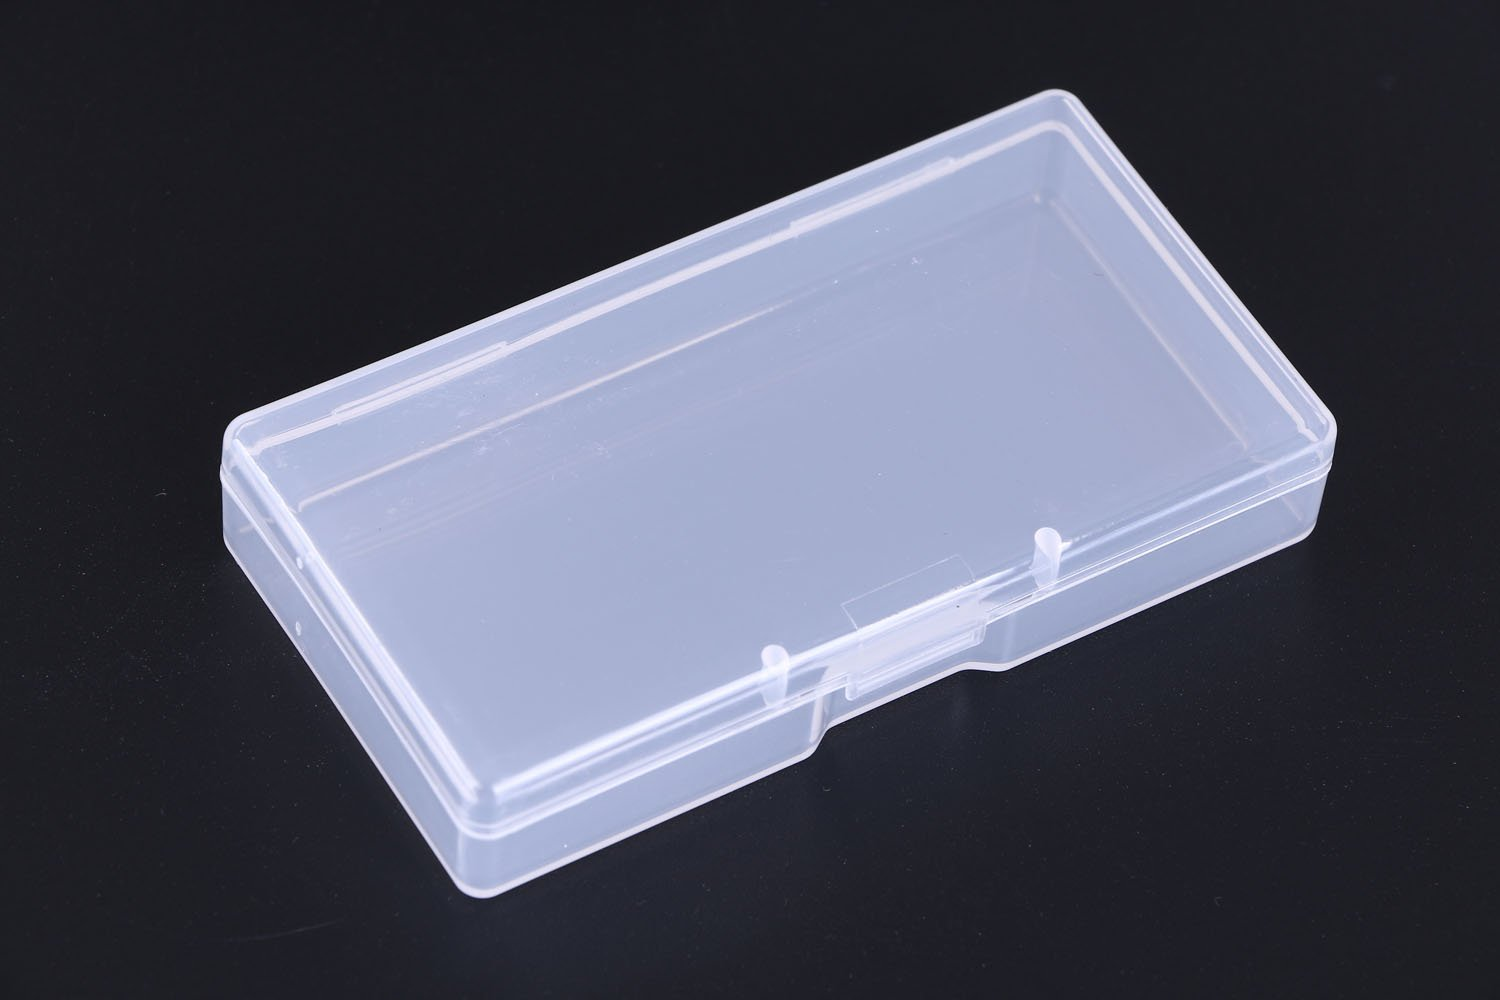 Mini Skater High Transparency Visible Plastic Box Clear Storage Case collection Organizer Container with Hinged Lid For Organizing Small Parts Office Supplies Clip Cotton Swab and pens (870 Pcs)